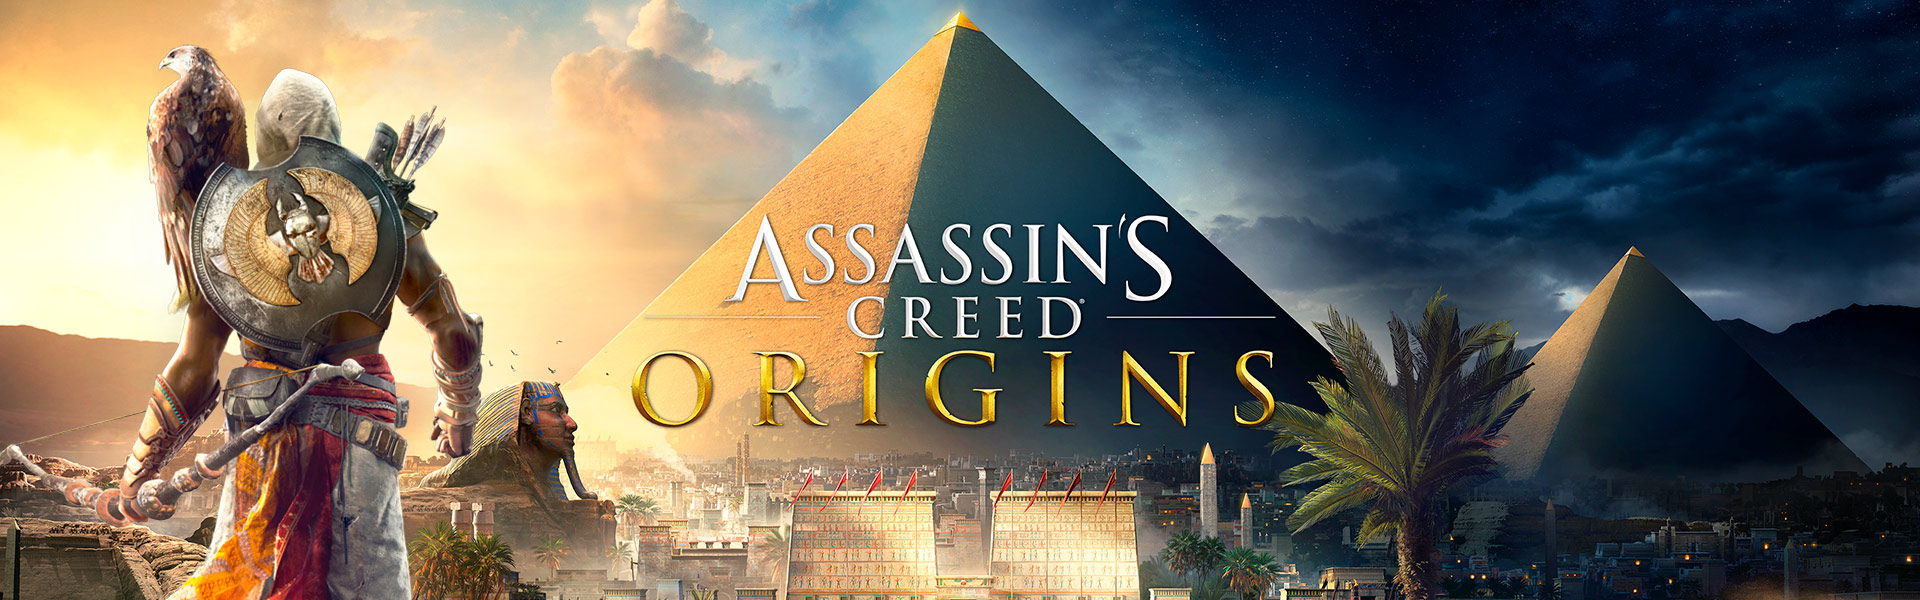 ASSASSIN S CREED ORIGINS+RU/ENG+WARRANTY+12% CASHBACK